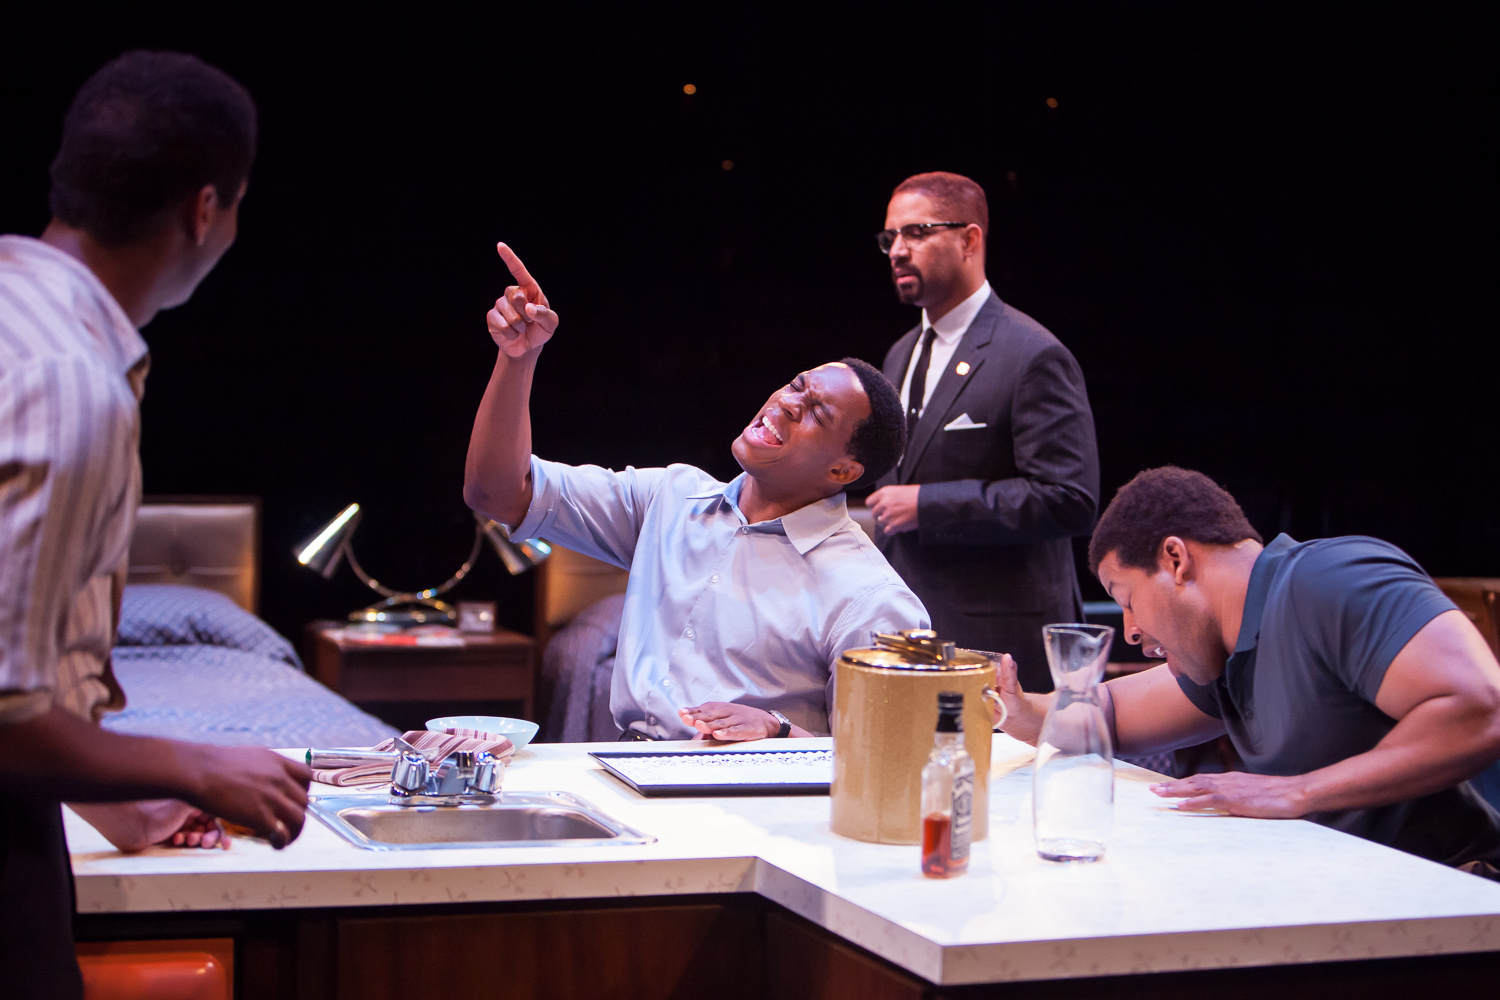 Nik Walker, Colby Lewis, Jason Delane and Morroco Omari in ONE NIGHT IN MIAMI at the Denver Center Theatre Company. Photo by Jennifer Koskinen | Merritt Design Photo